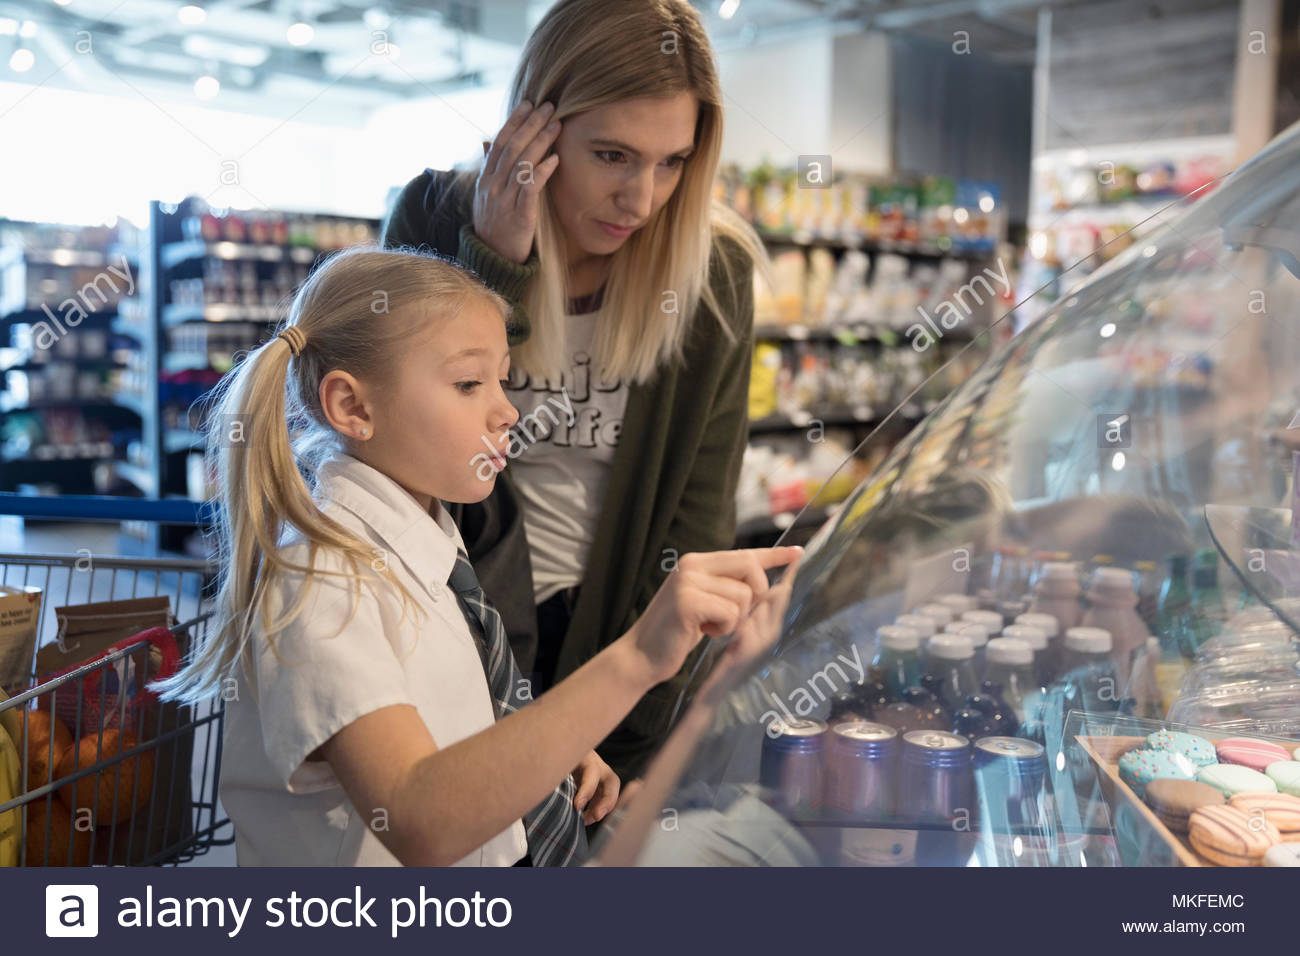 Mother watching daughter pointing at desserts in bakery display case in market - Stock Image